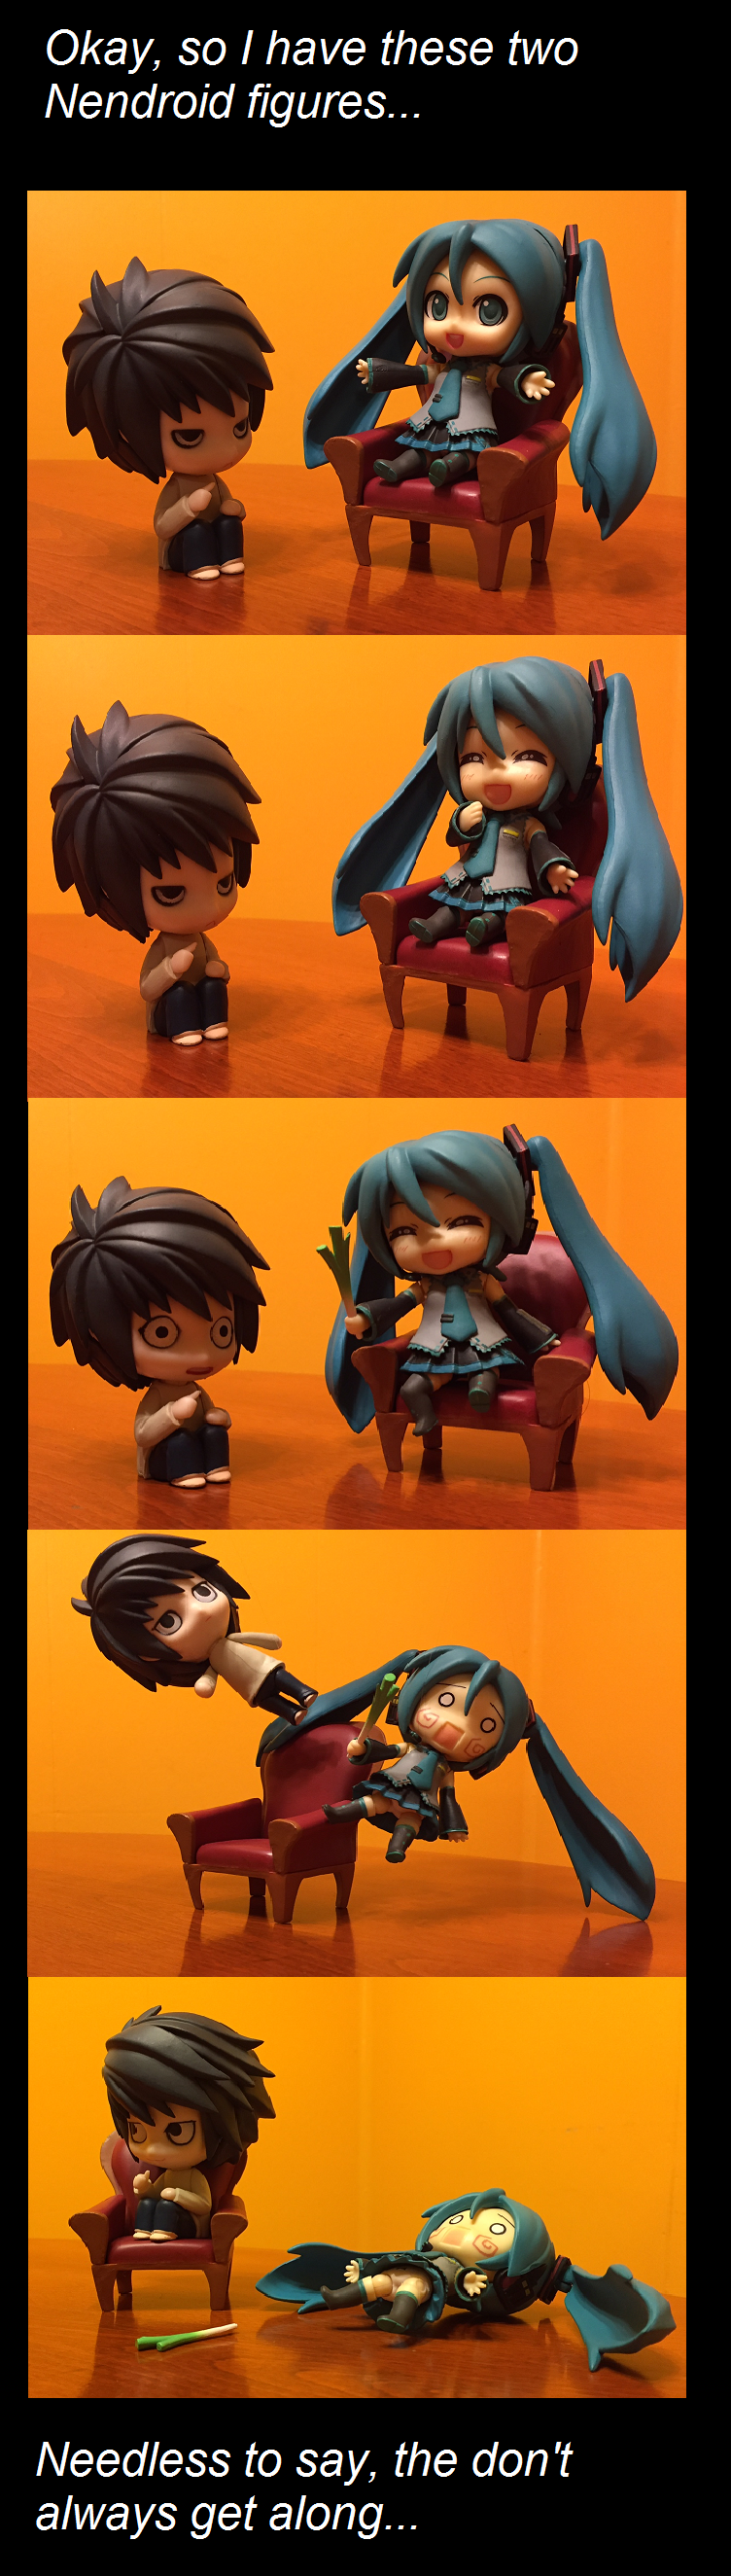 L and Hatsune Miku XD I made this myself, so I hope you like it! (These are my only two Nendroid figures at the moment...)